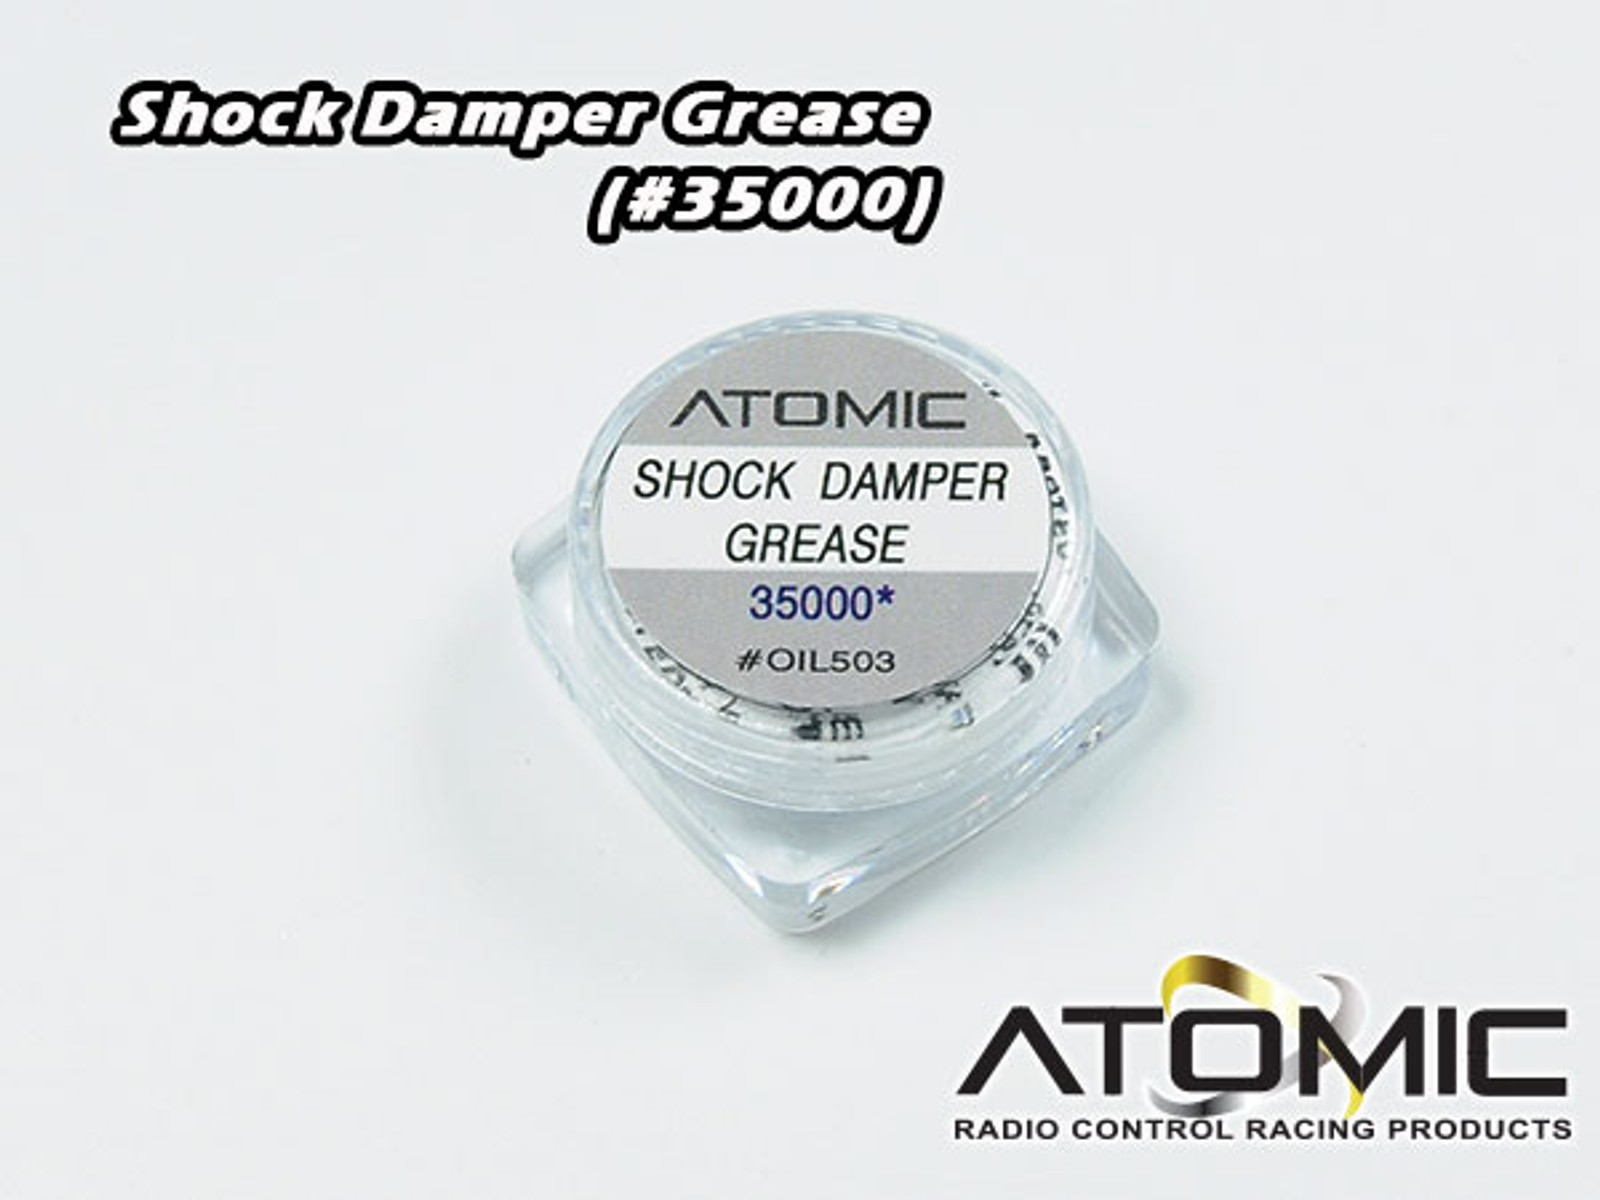 OIL503 / Shock Damper Grease (#35000) - Bild 1